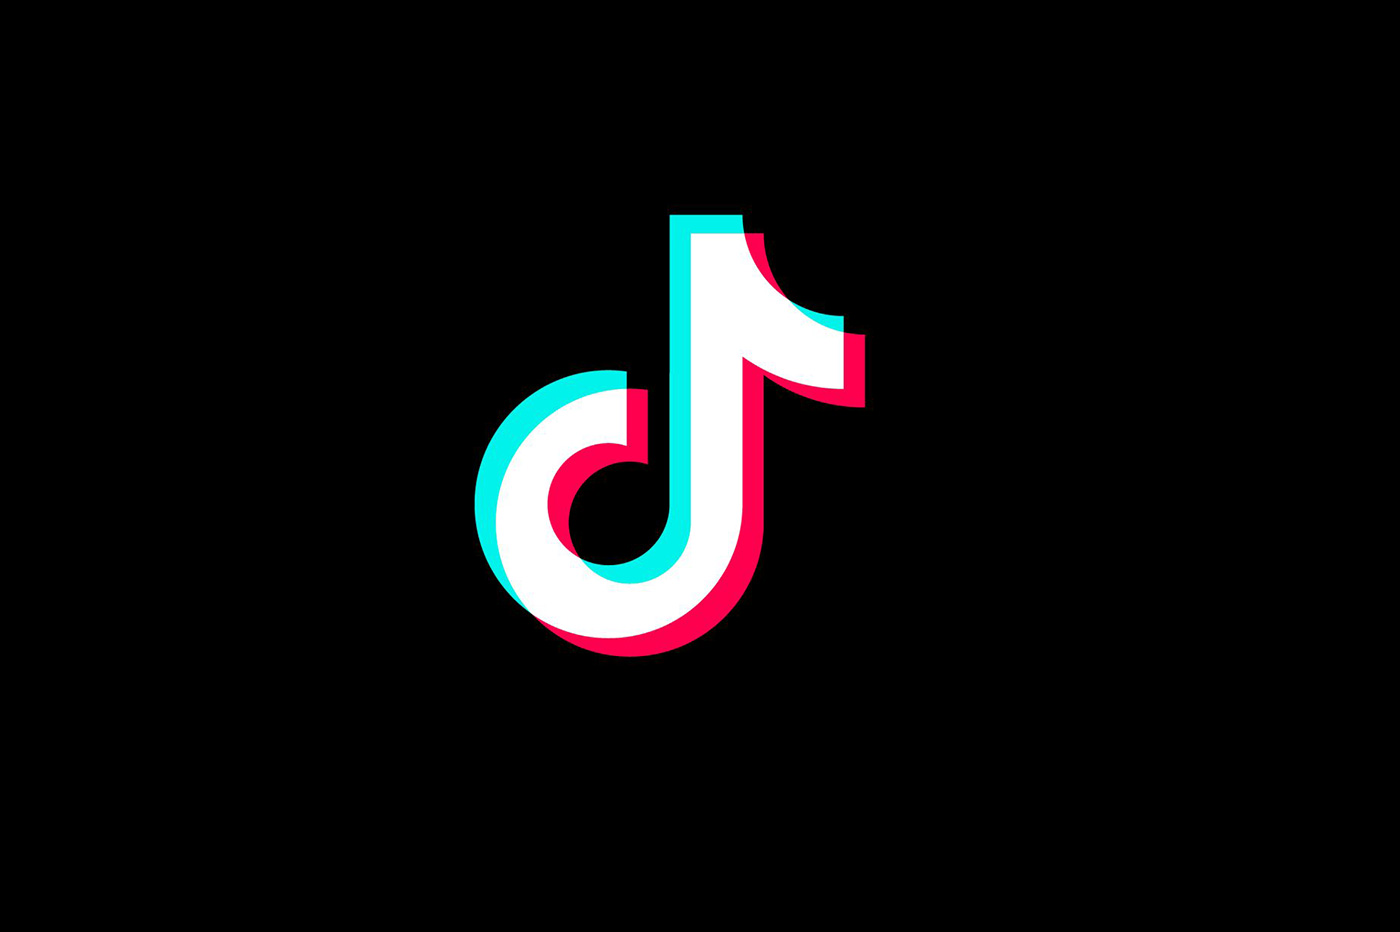 COME CREARE VIDEO SU TIK TOK